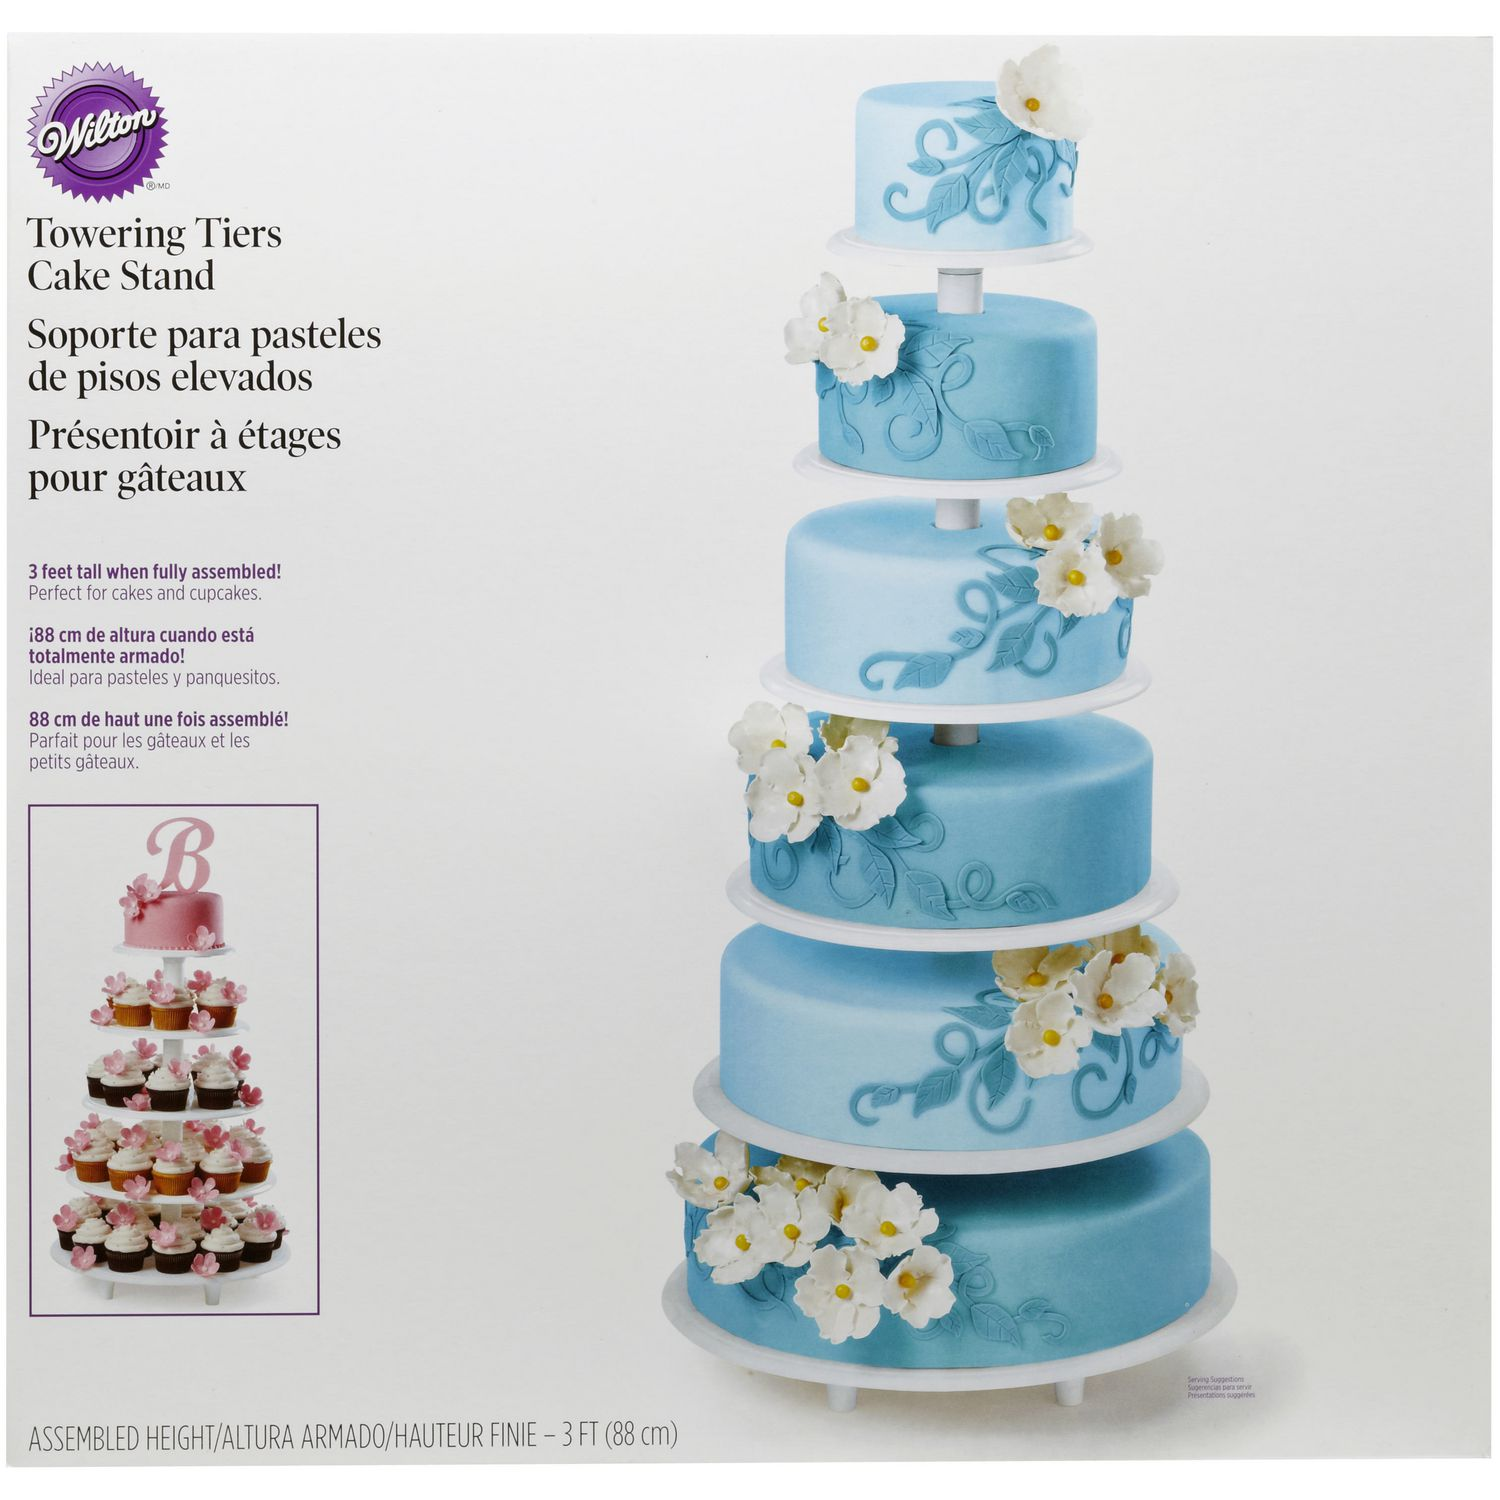 Wilton Towering Tiers Cake Stand | Walmart Canada